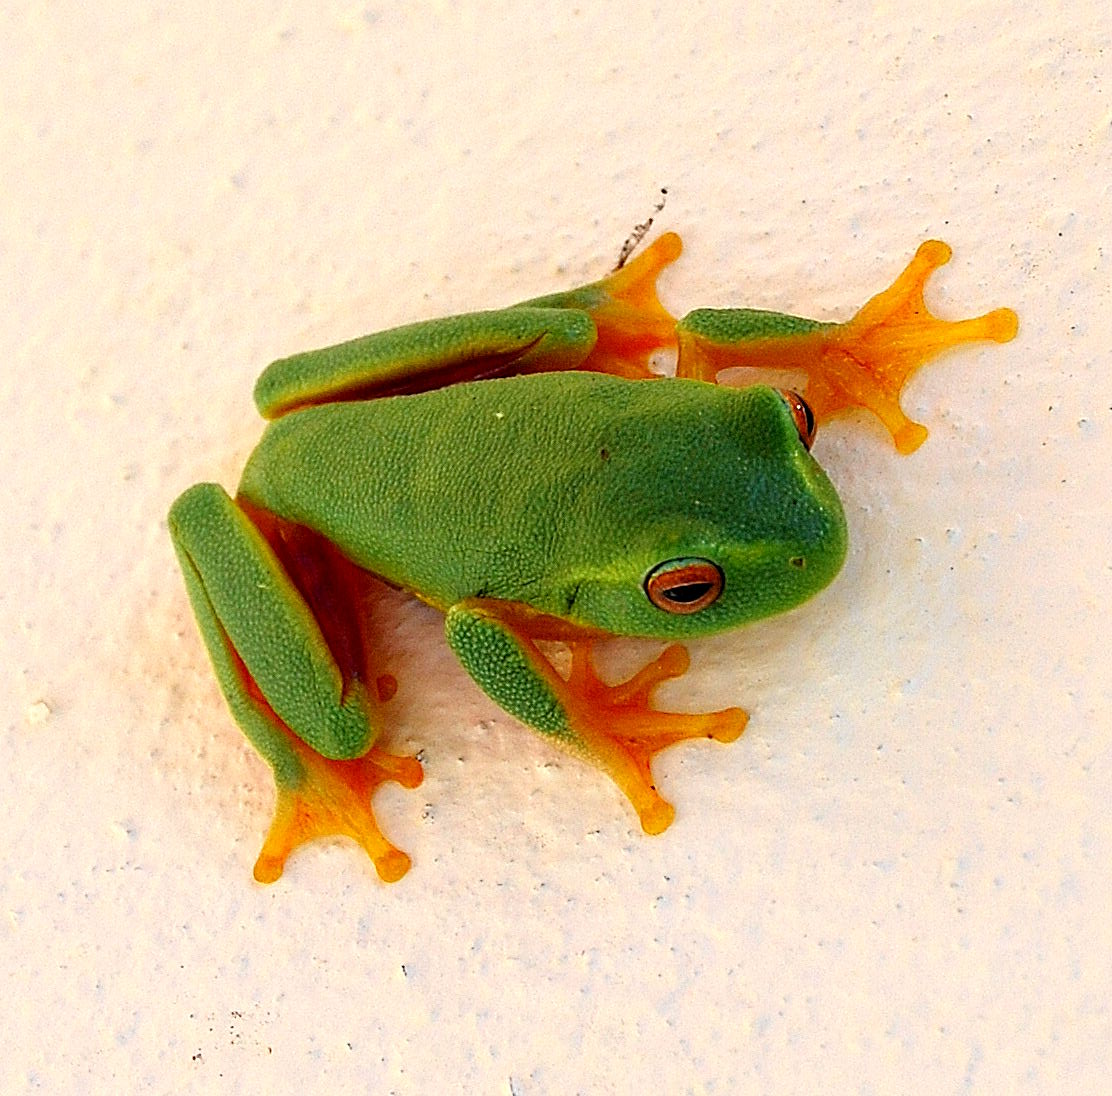 Do Goliath Frogs Live On Land Or In Water 87